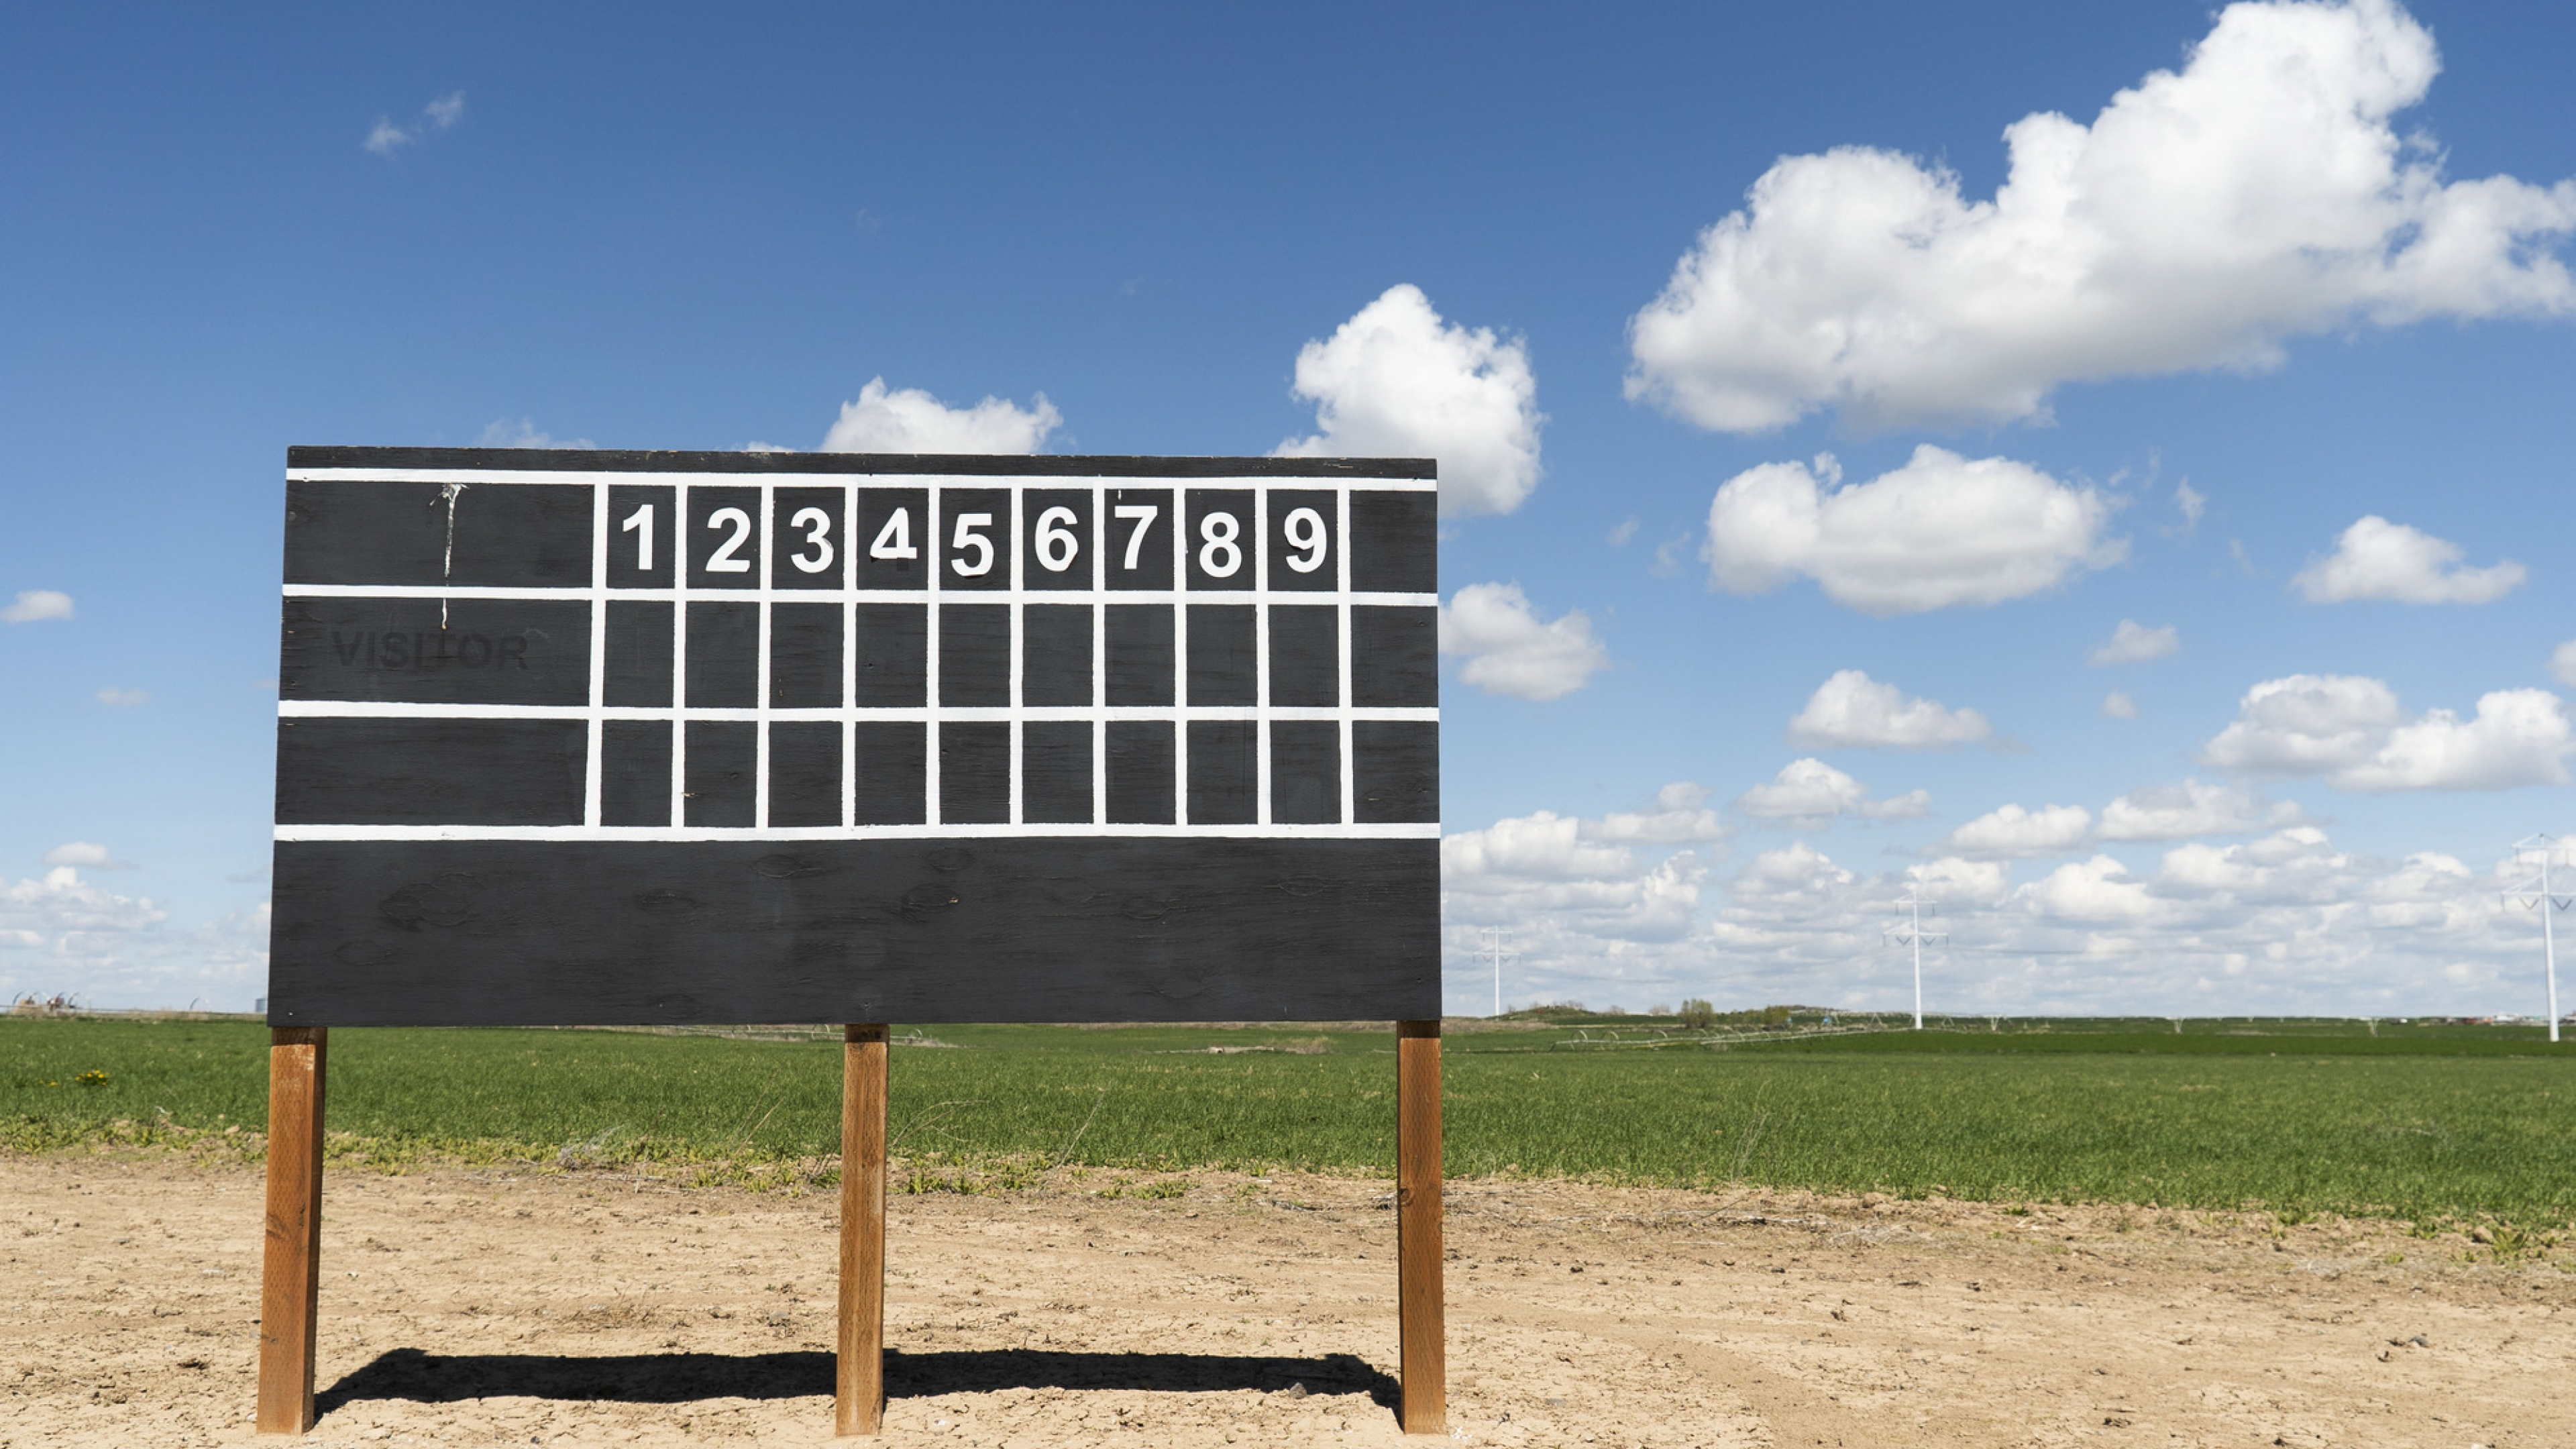 scoreboard with grass and sky behind